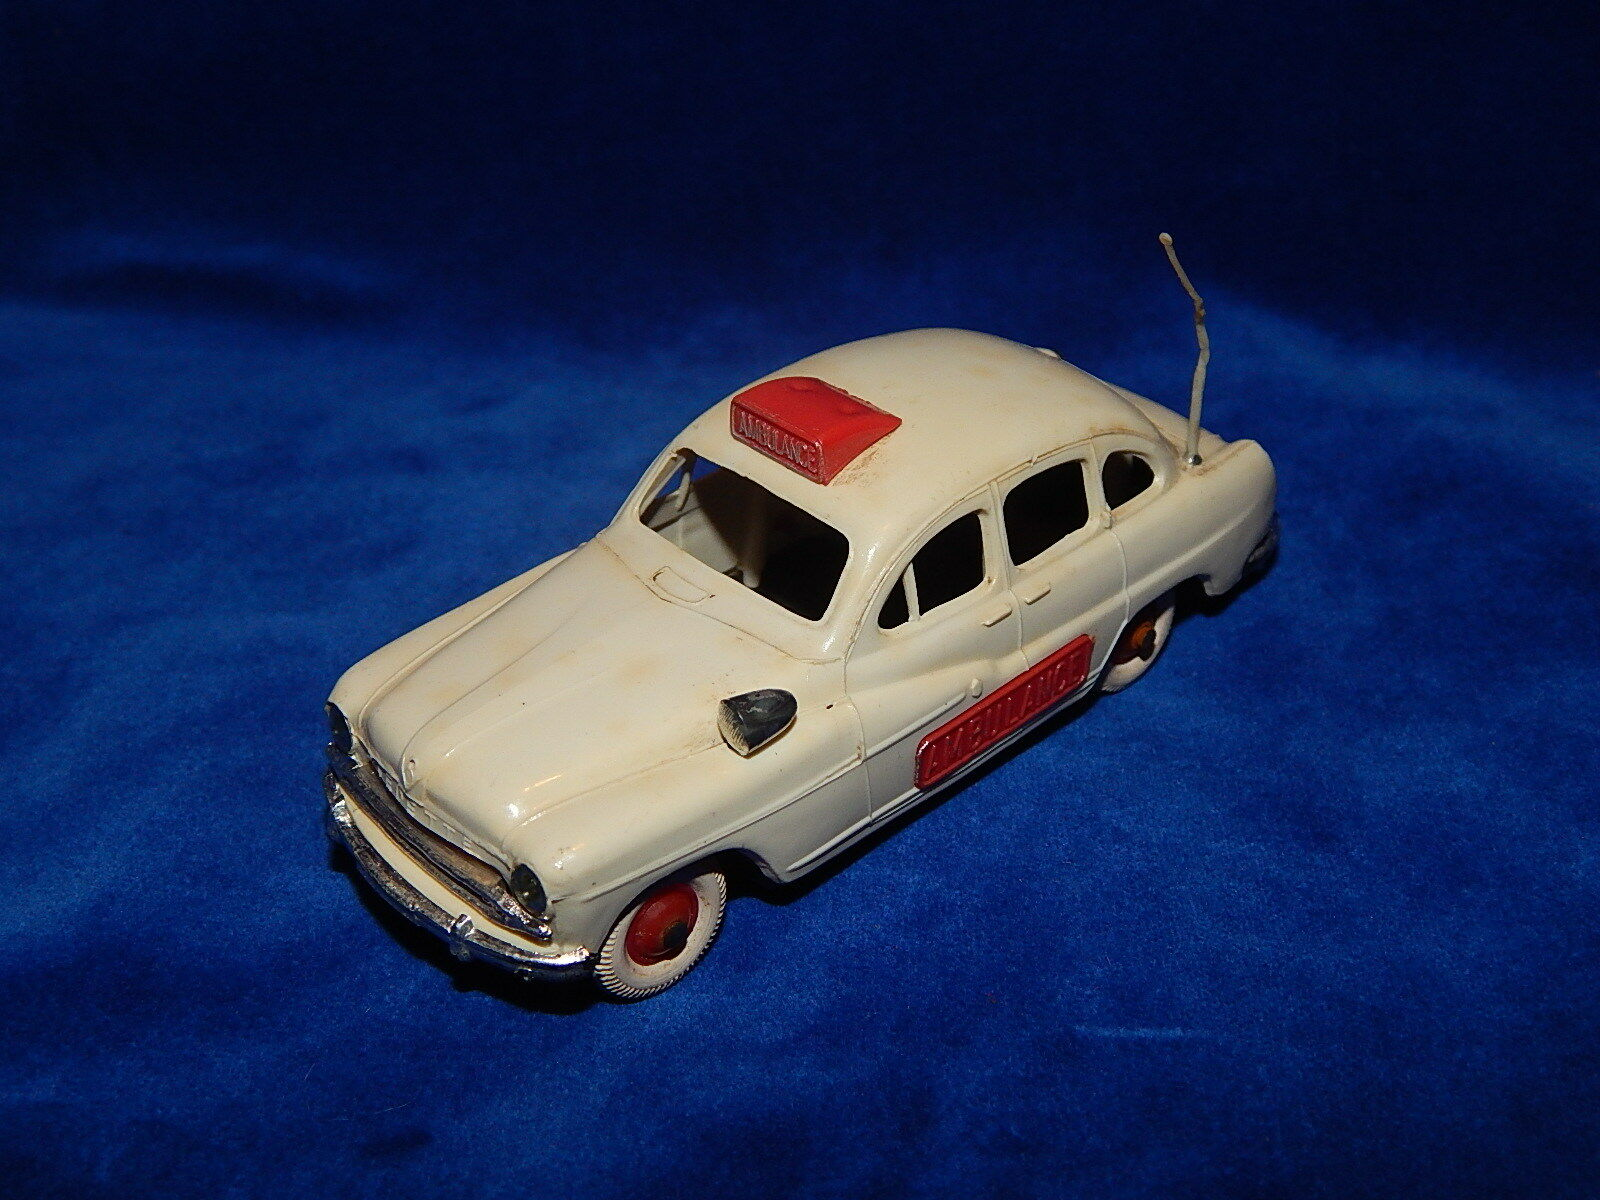 NOREV - ANCIENNE (CHASSIS TOLE) - VEDETTE 54 AMBULANCE